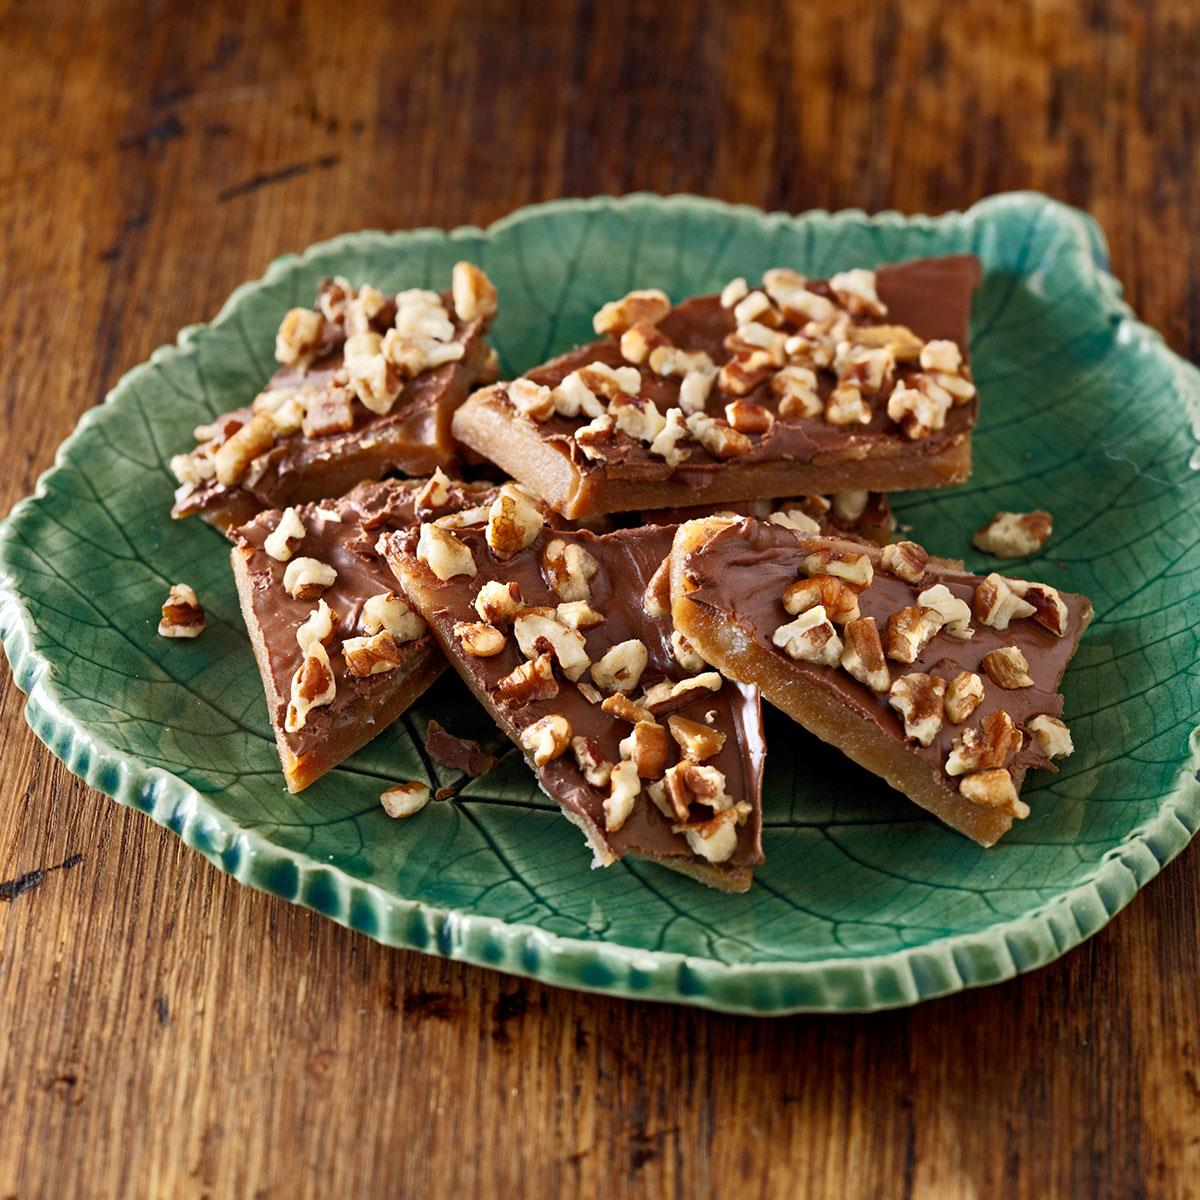 Toffee Candy image